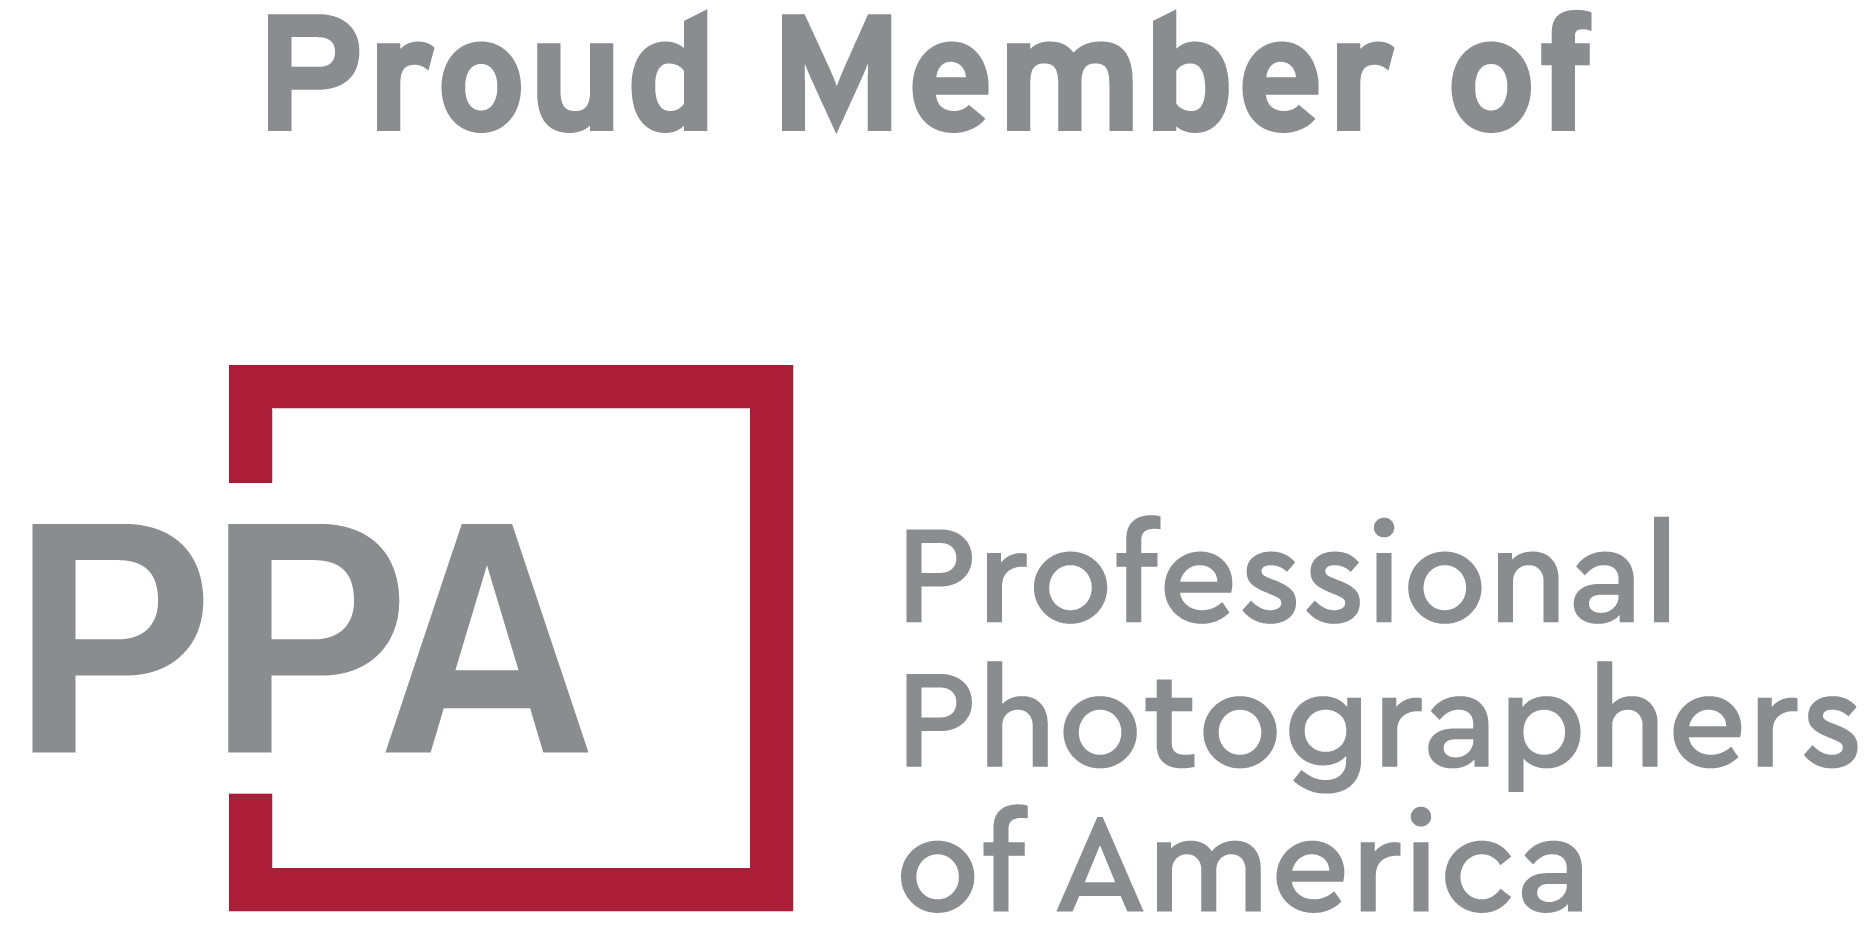 Professional Photographers of America, logo